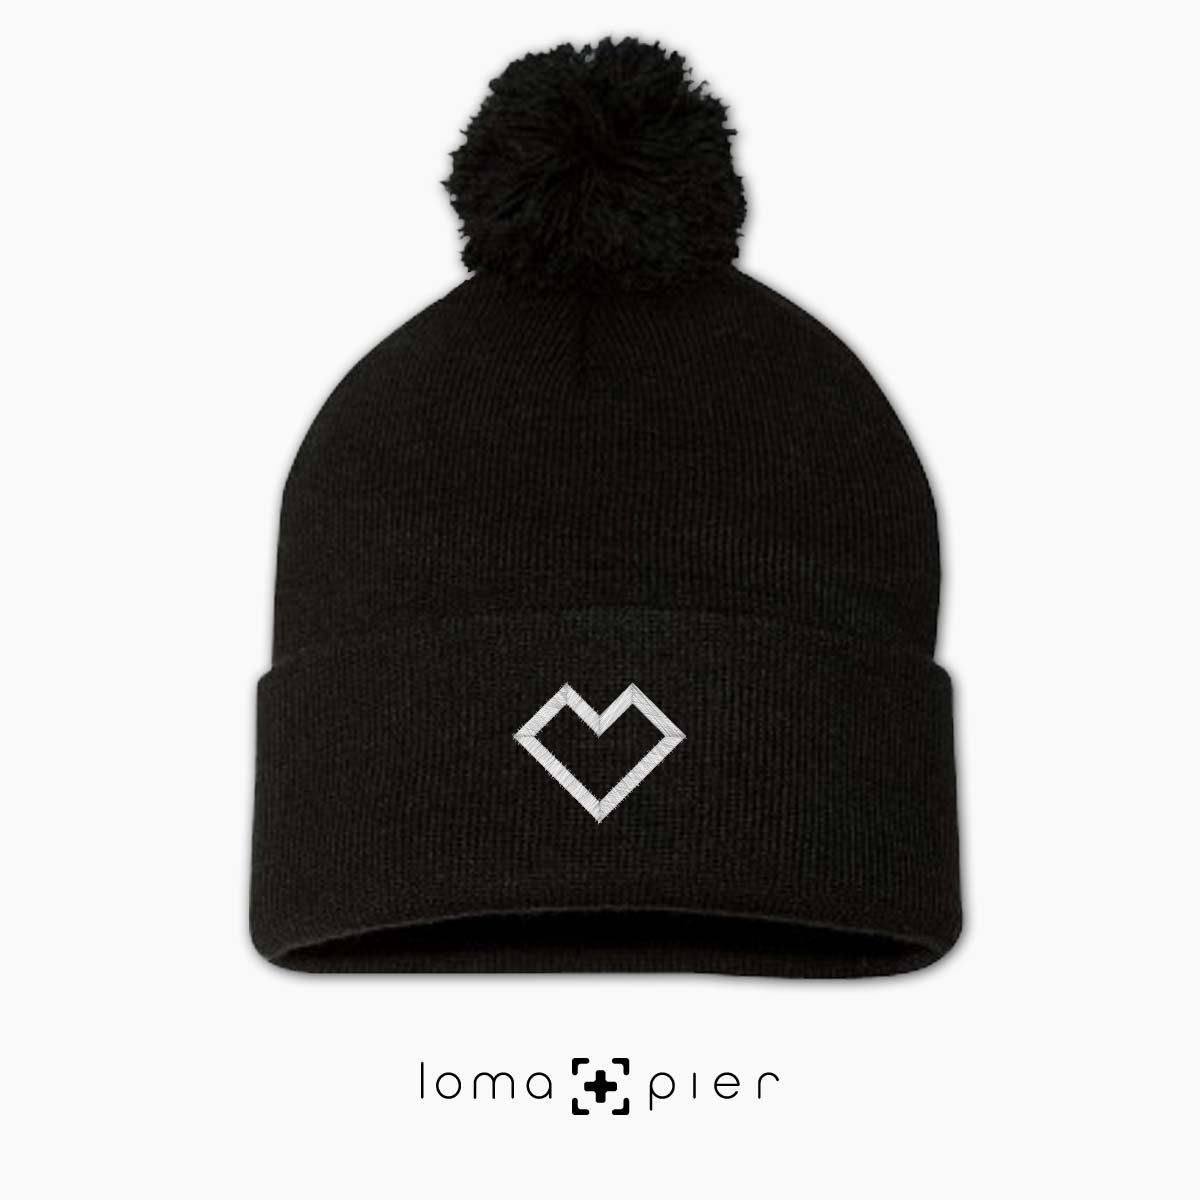 EDGY HEART icon embroidered on a black pom pom beanie with white thread by loma+pier hat store